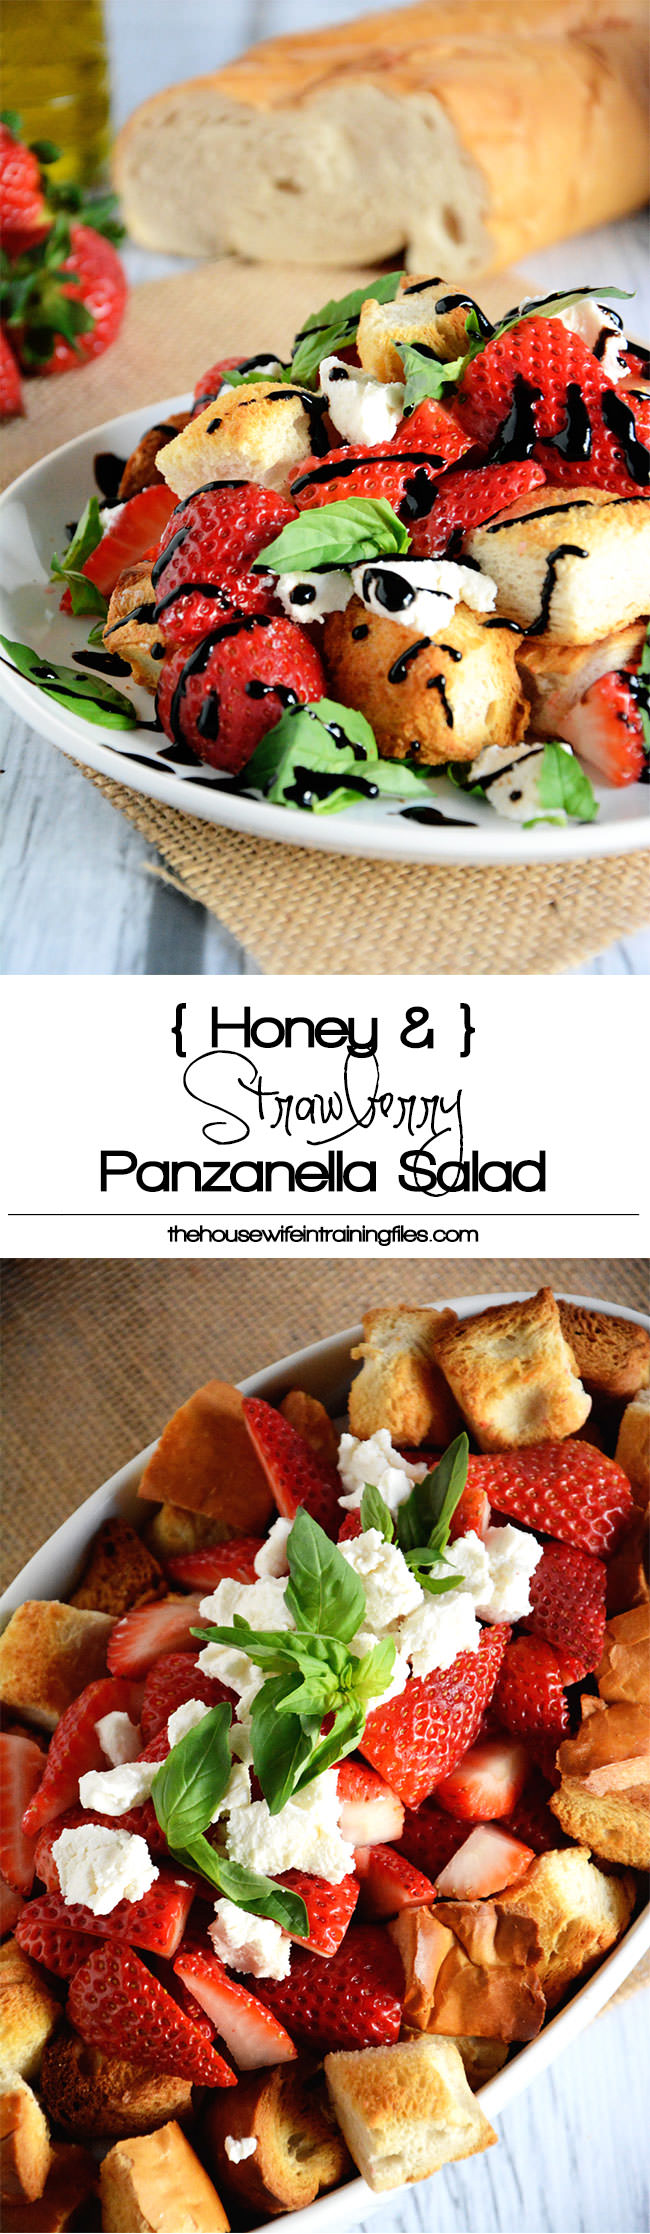 A fresh twist on a panzanella salad with strawberries, honey goat cheese, basil, croutons and a balsamic drizzle.